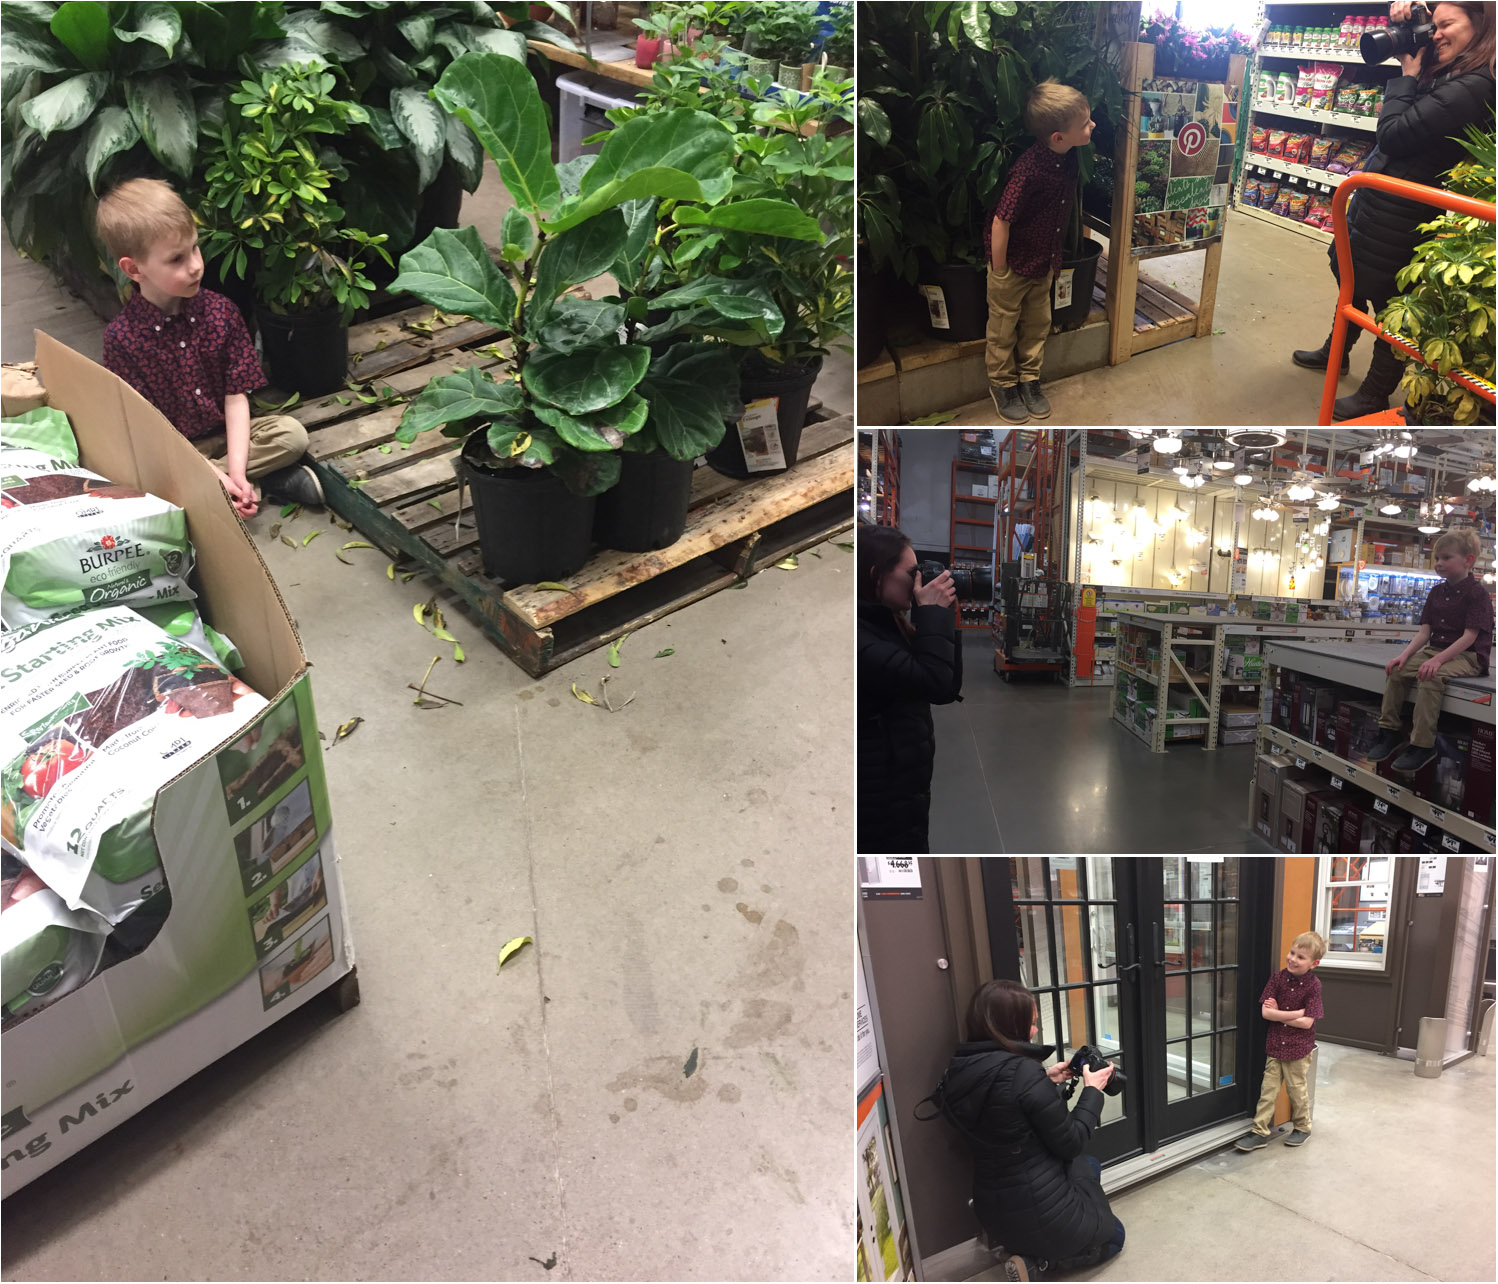 And here are a few behind the scenes shots to show what we were working with!